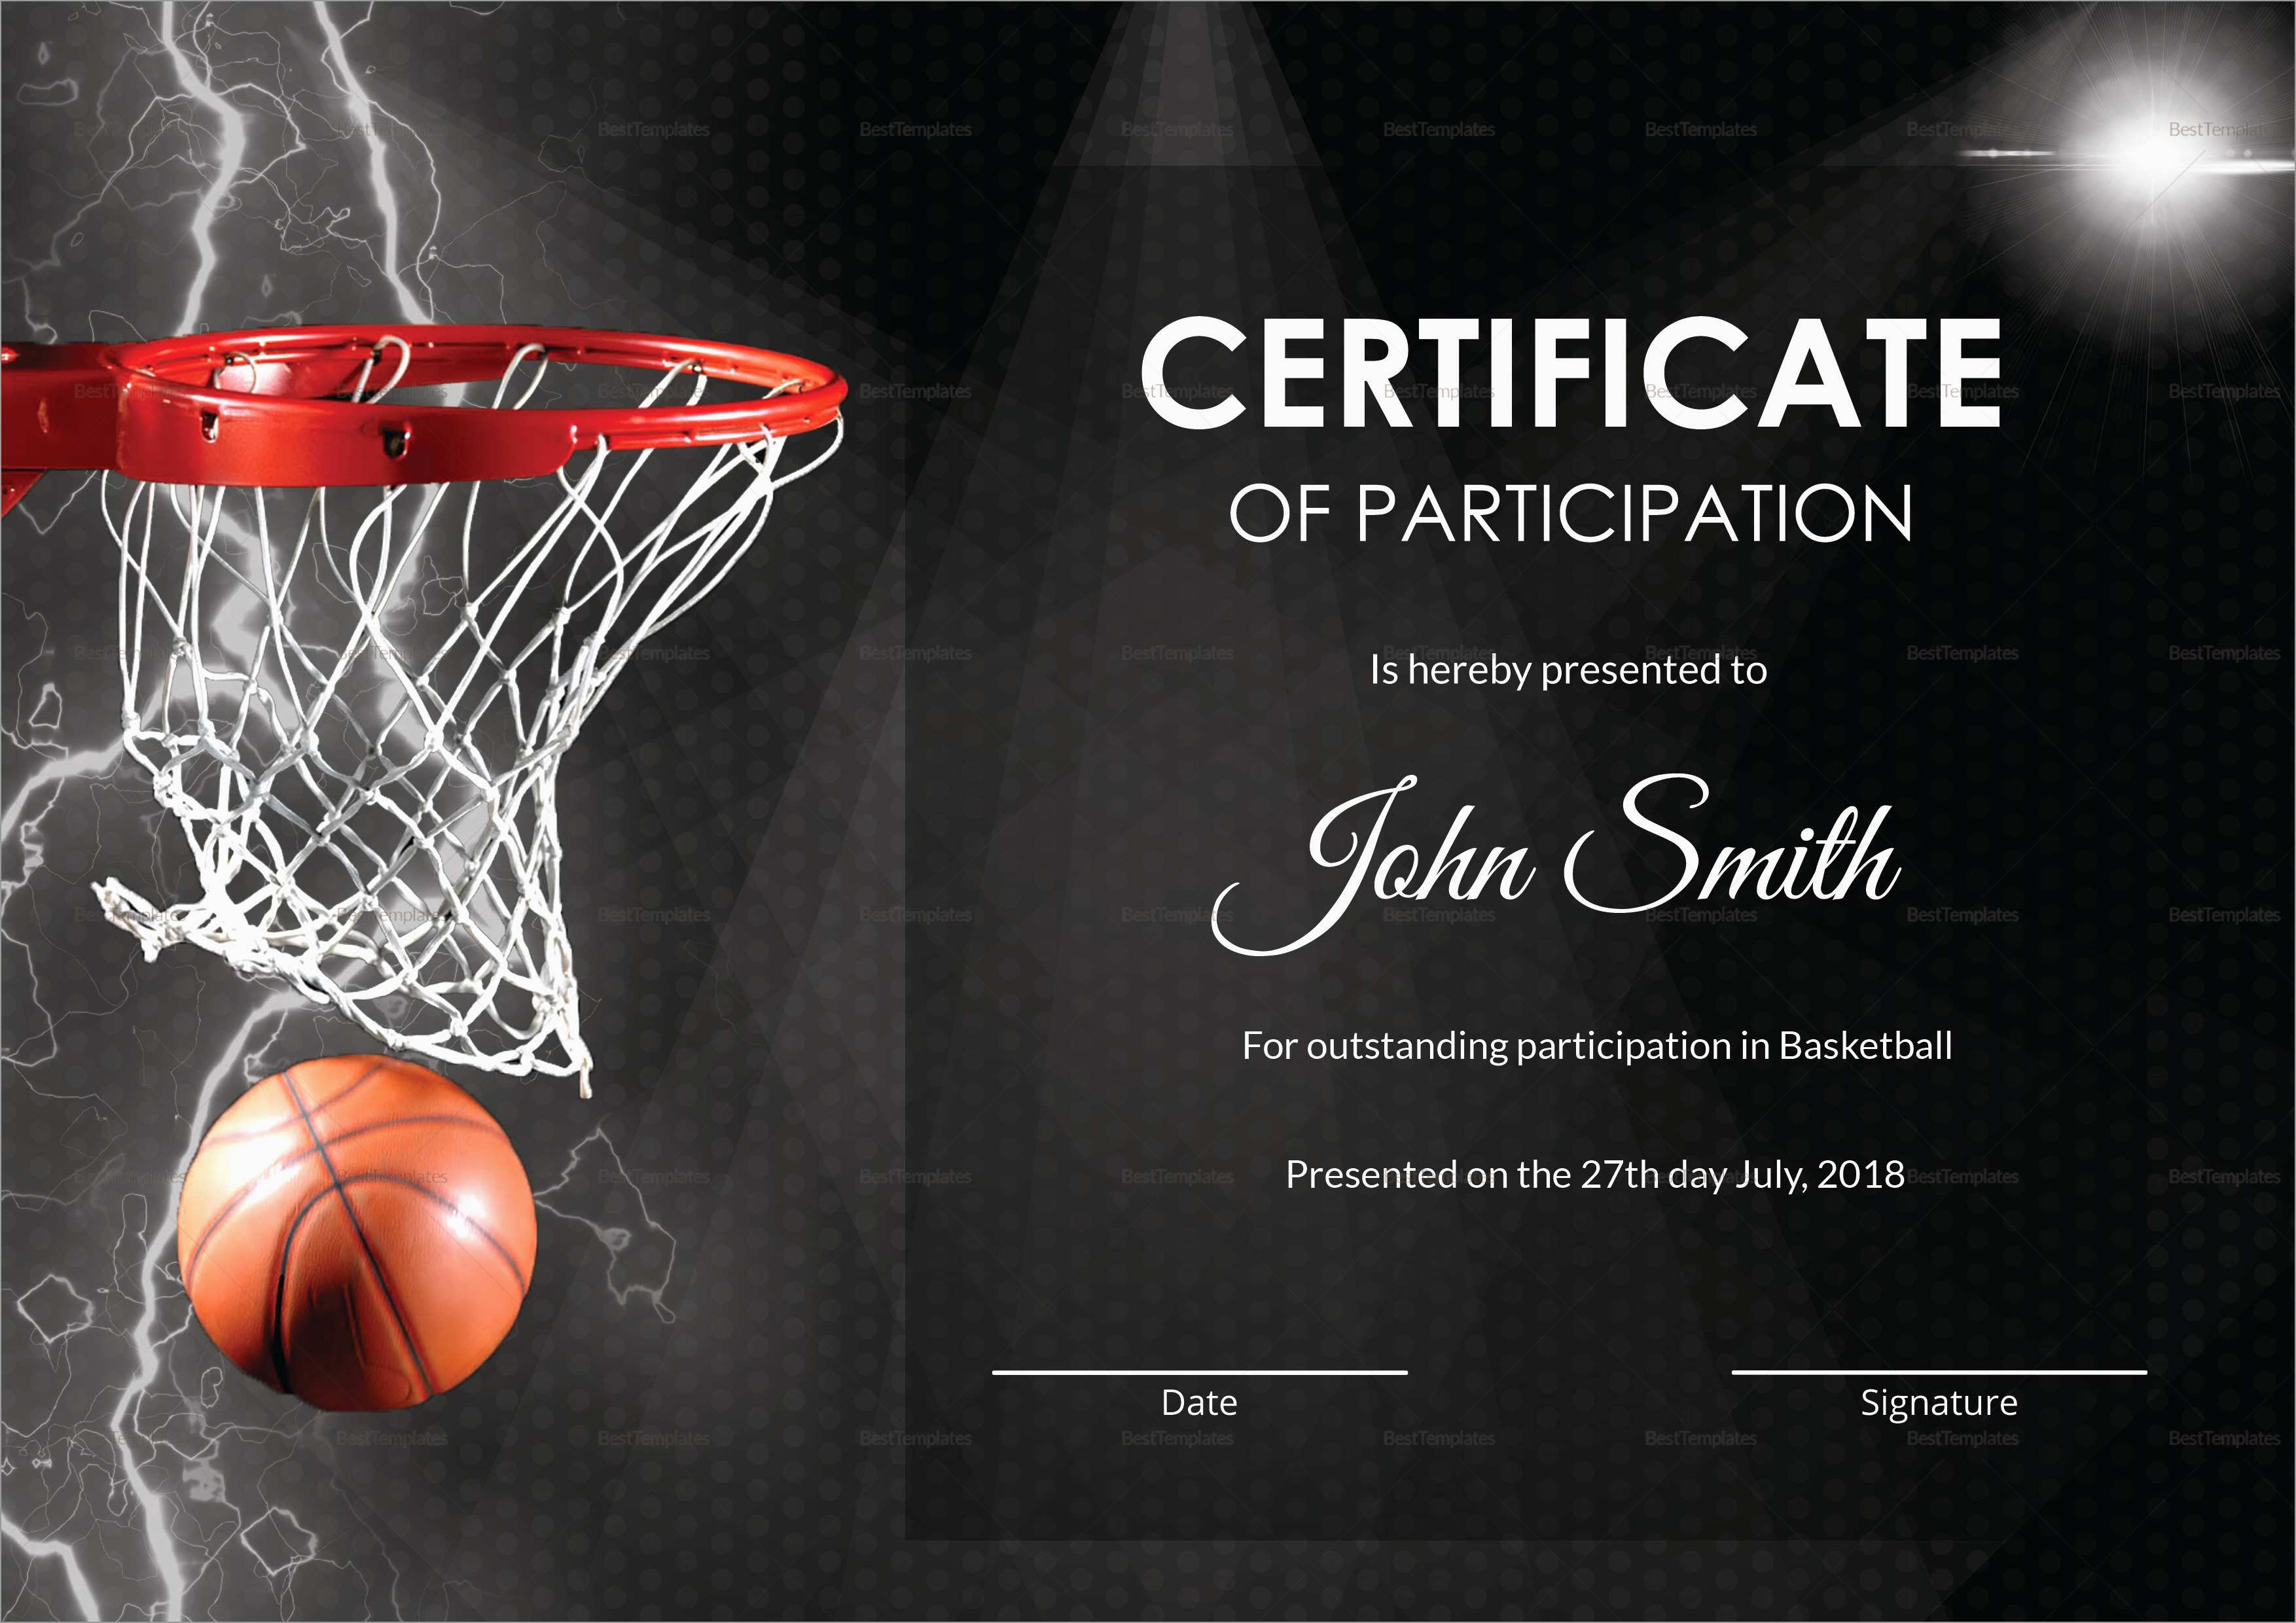 Elegant Free Basketball Website Templates | Best Of Template - Basketball Participation Certificate Free Printable